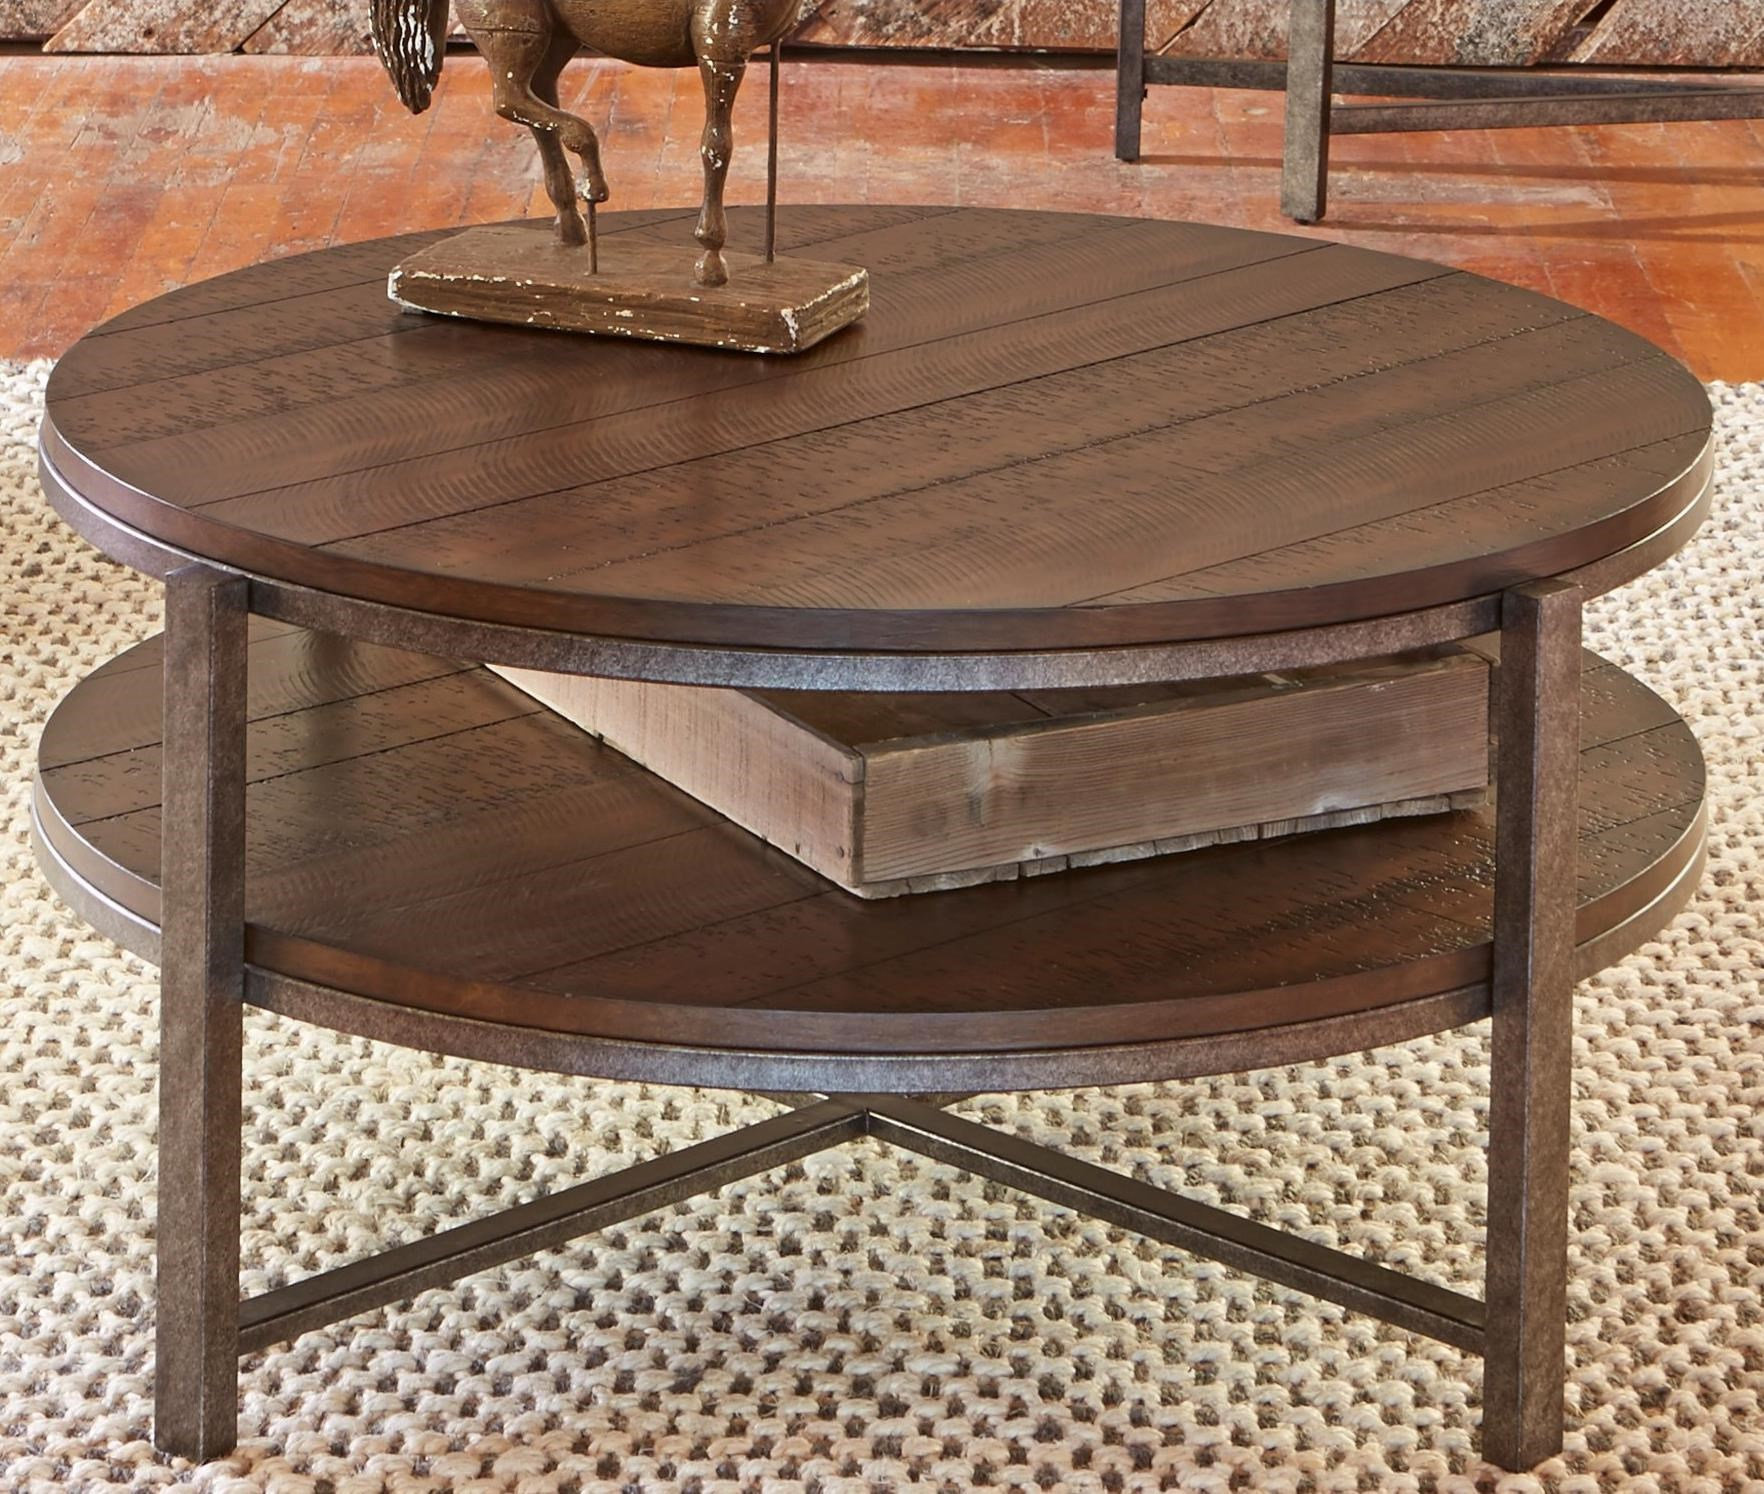 Breckinridge Round Cocktail Table with Shelf by Libby at Walker's Furniture